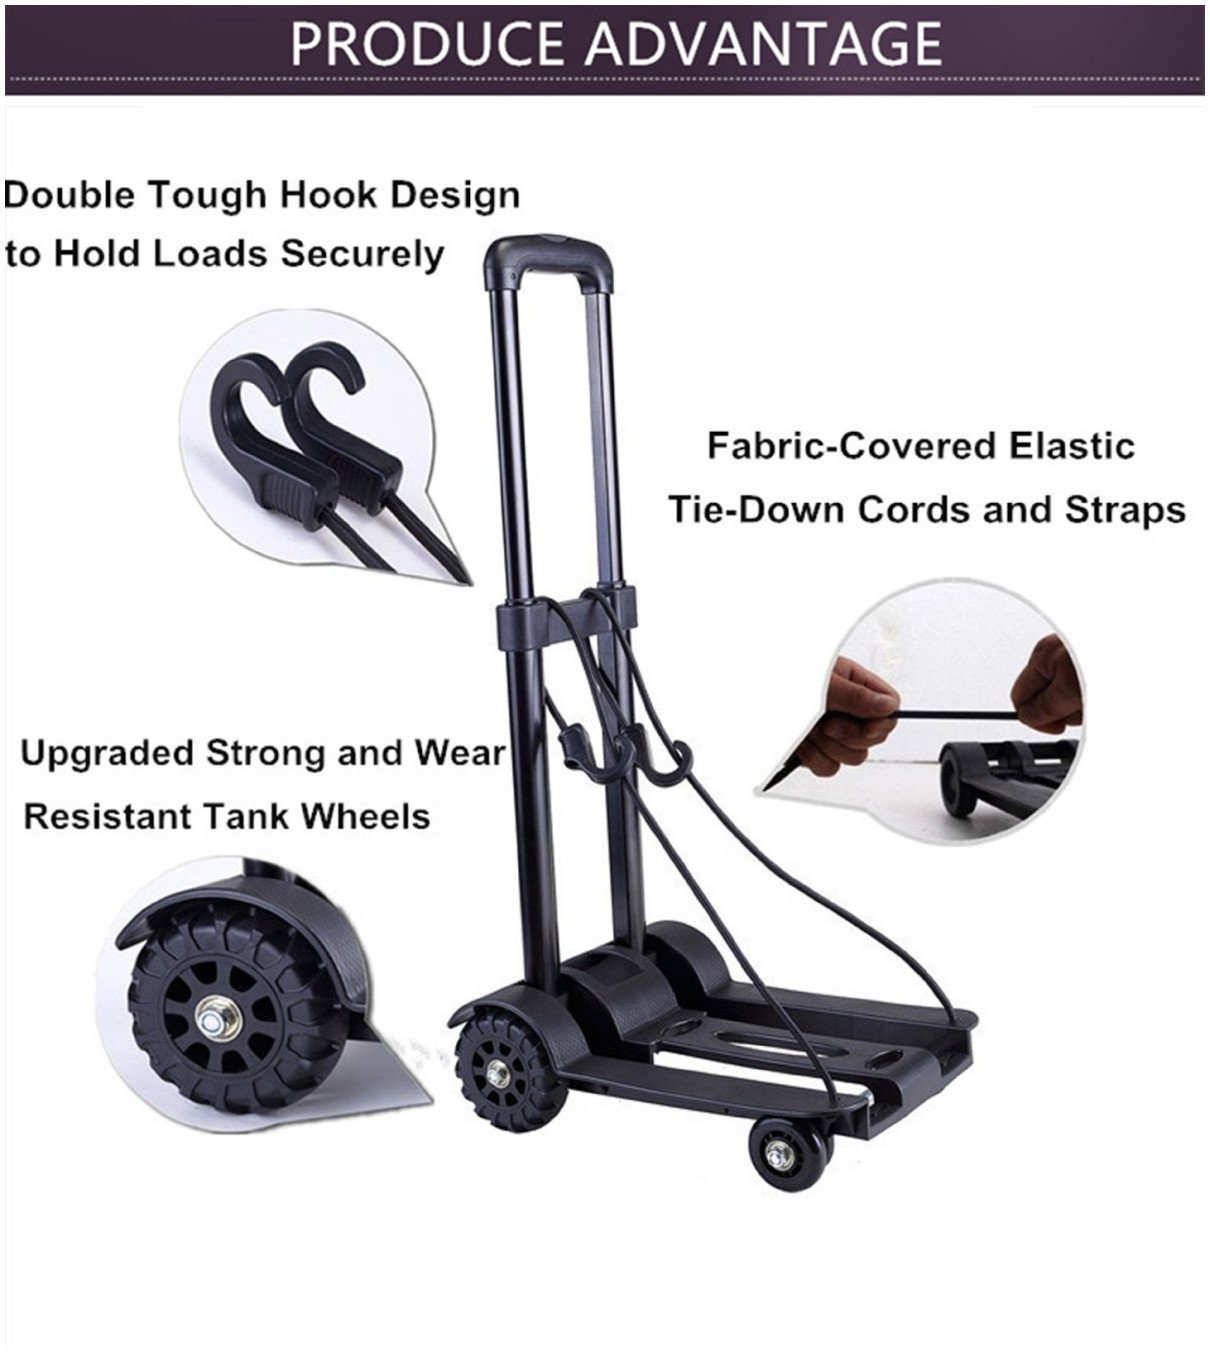 Folding Hand Truck, 70 Kg/155 lbs Heavy Duty 4-Wheel Solid Construction Utility Cart Compact and Lightweight for Luggage, Personal, Travel, Auto, Moving and Office Use - Portable Fold Up Dolly by ROYI by ROYI